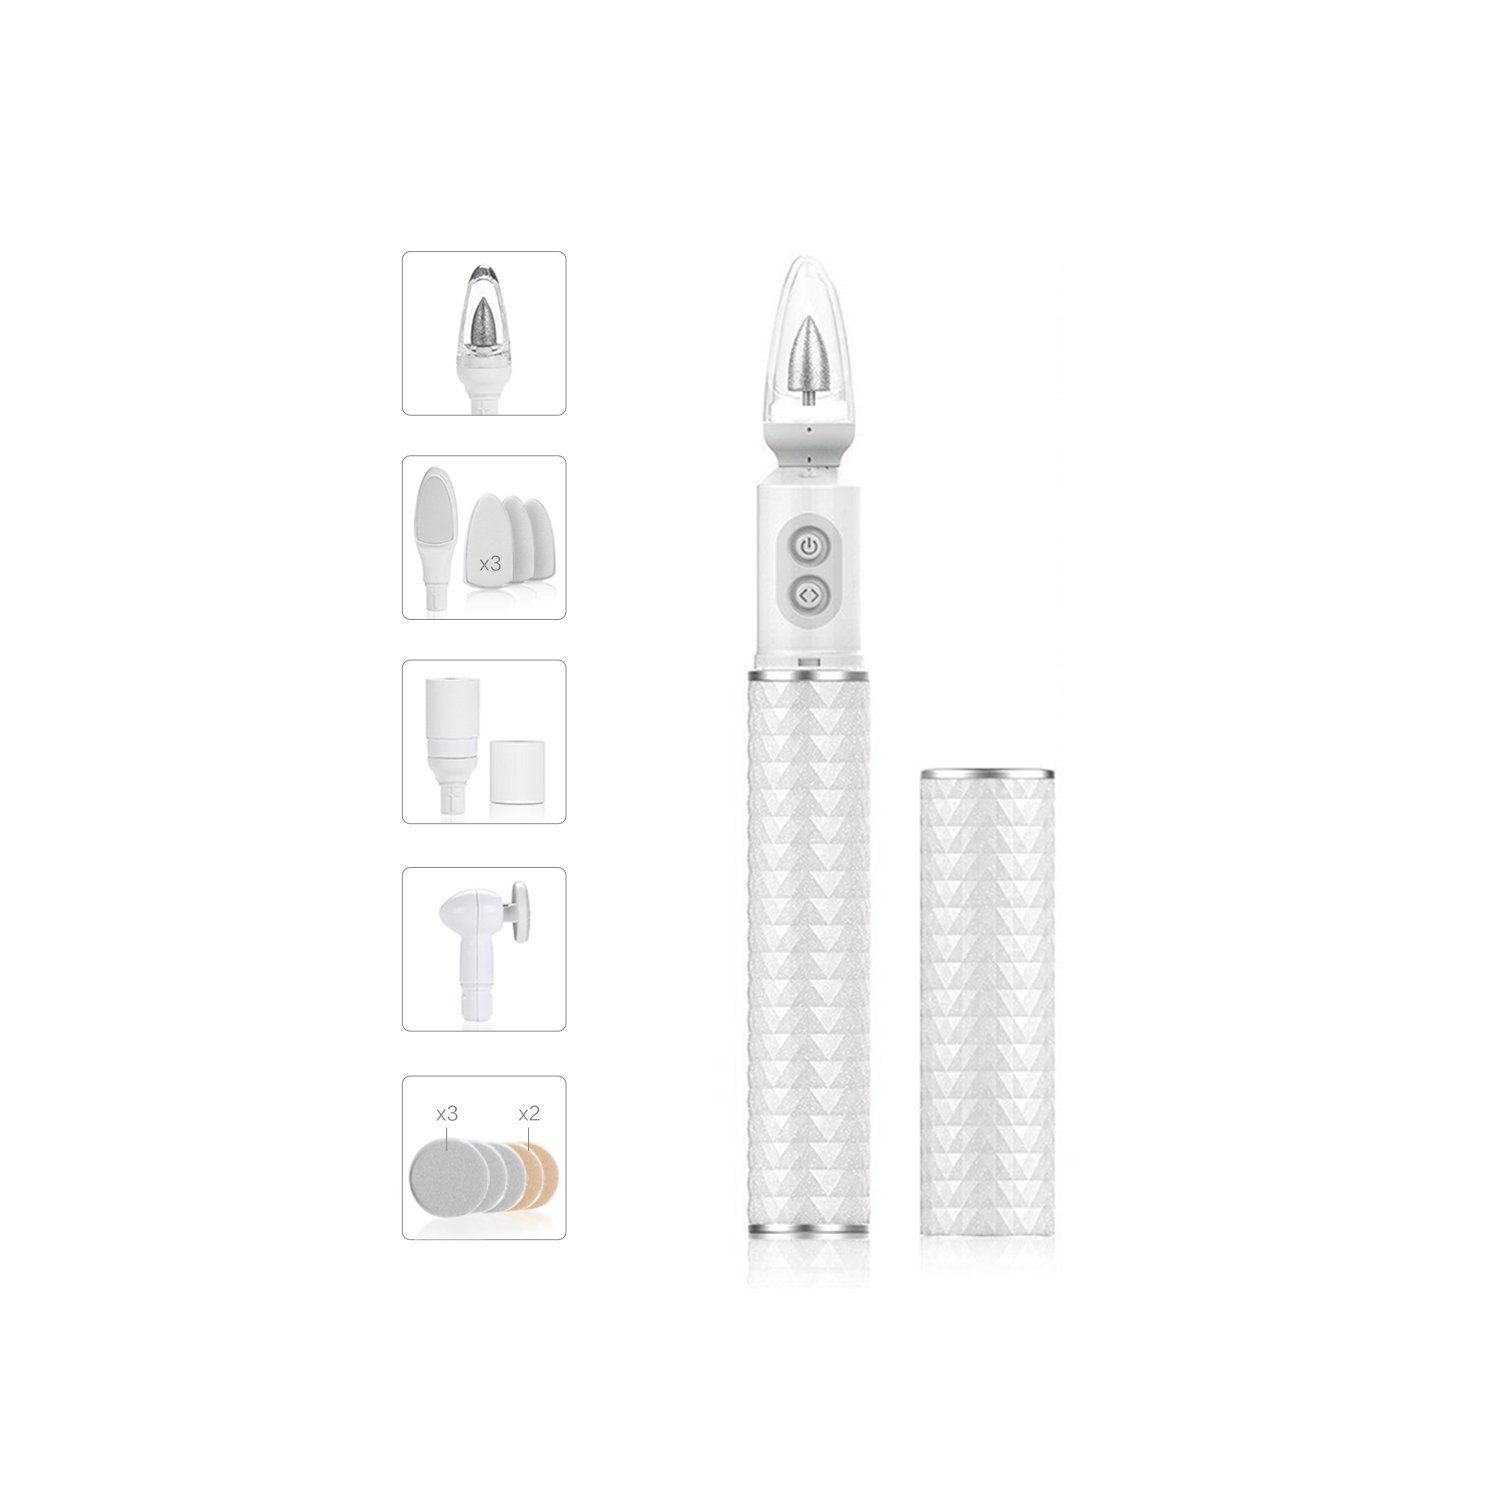 Baby Nail File, PEIPAI Electric Nail Trimmer Manicure & Pedicure Set, Toes Fingernails Care Trim Polish for Baby 7 in 1 LED Nail File Tool UKBT-011